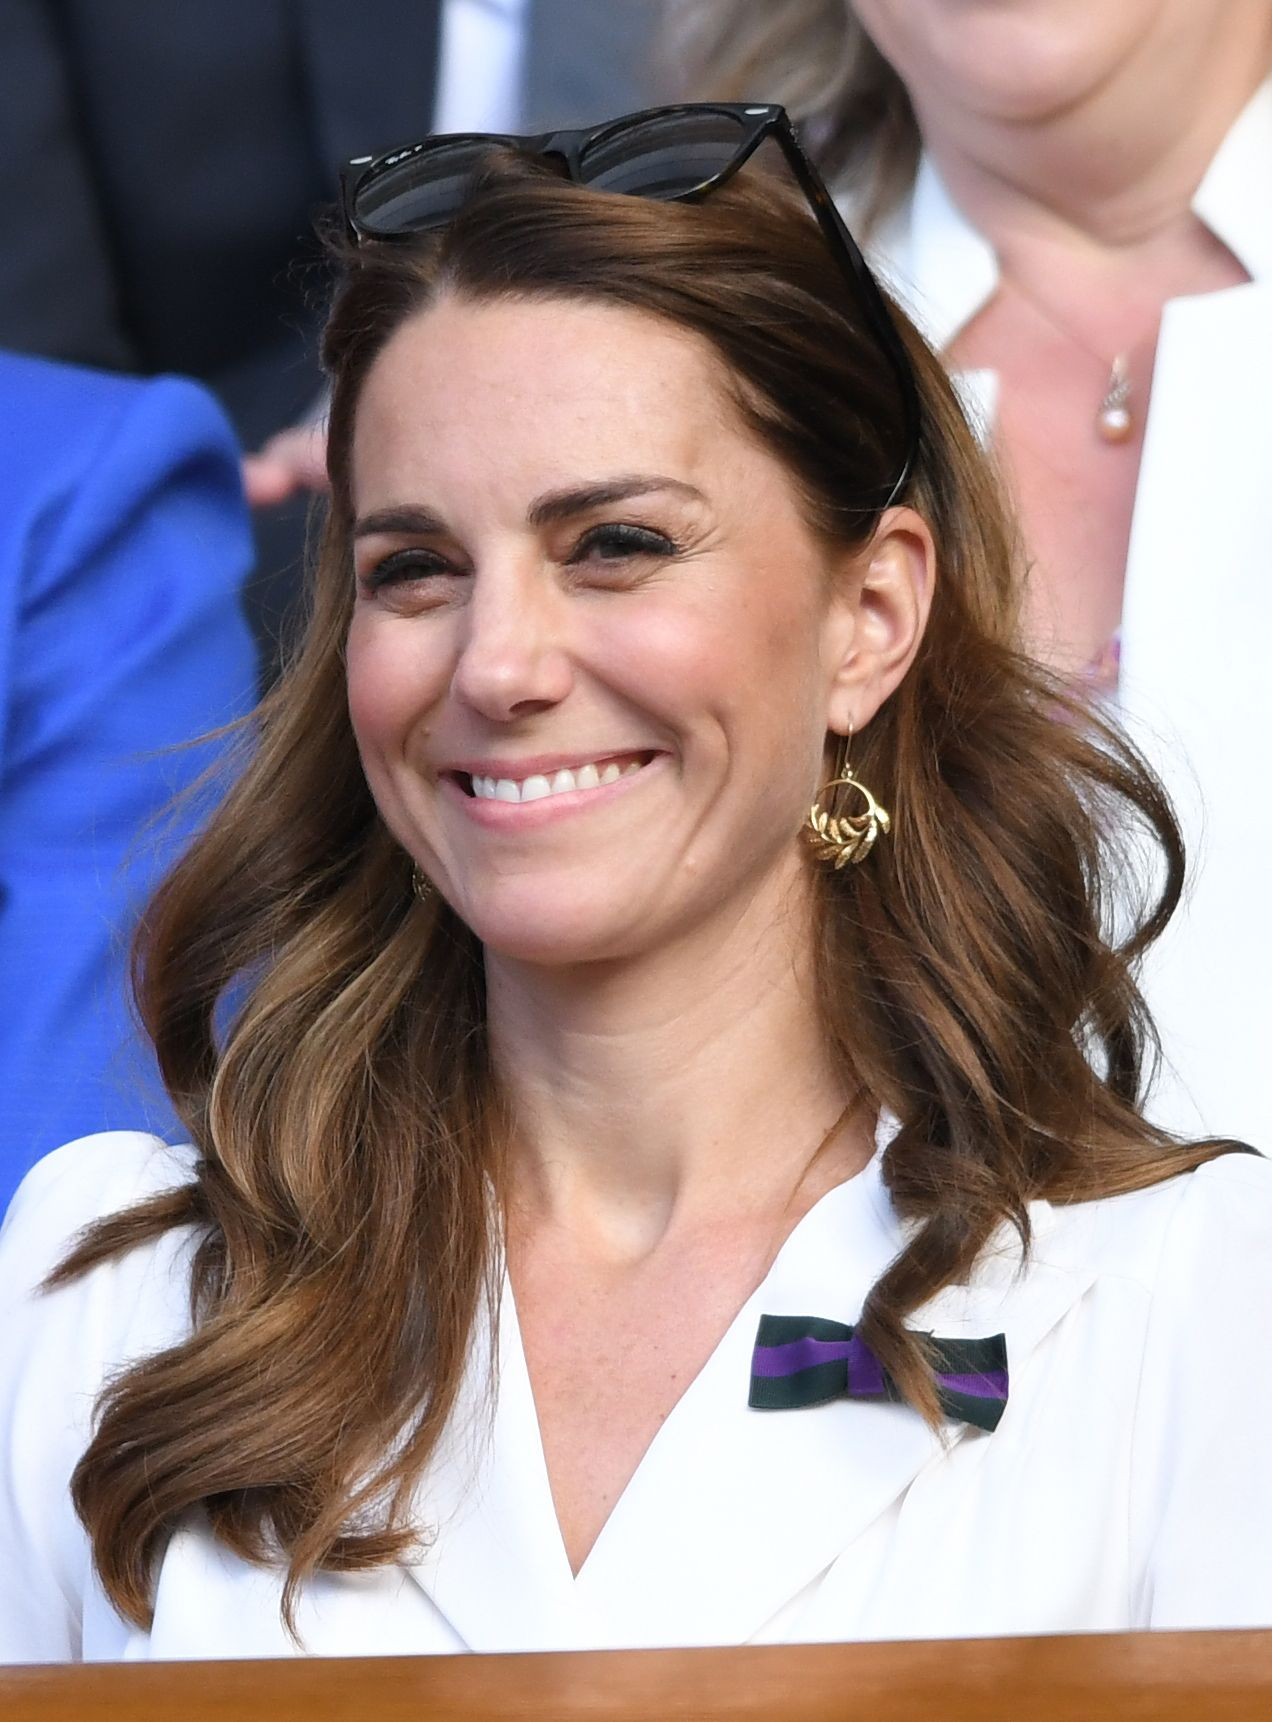 Why Kate Middleton Is 'Consciously' Adding More 'Edge' to Her Style